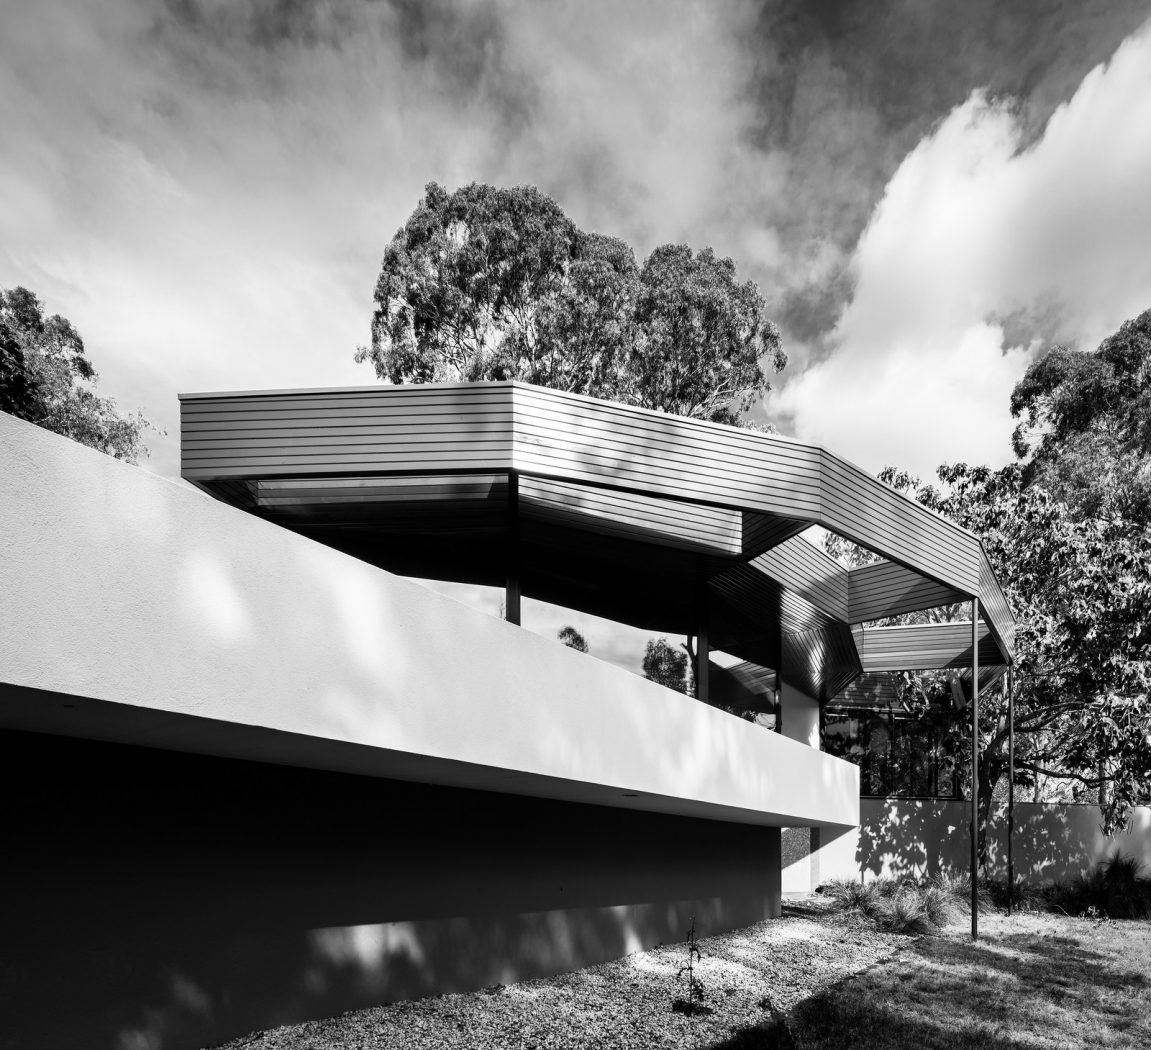 image: The Benjamin Residence or 'Round House' as the locals call it, designed by Alex Jelinek in 1956. Photo: Darren Bradley